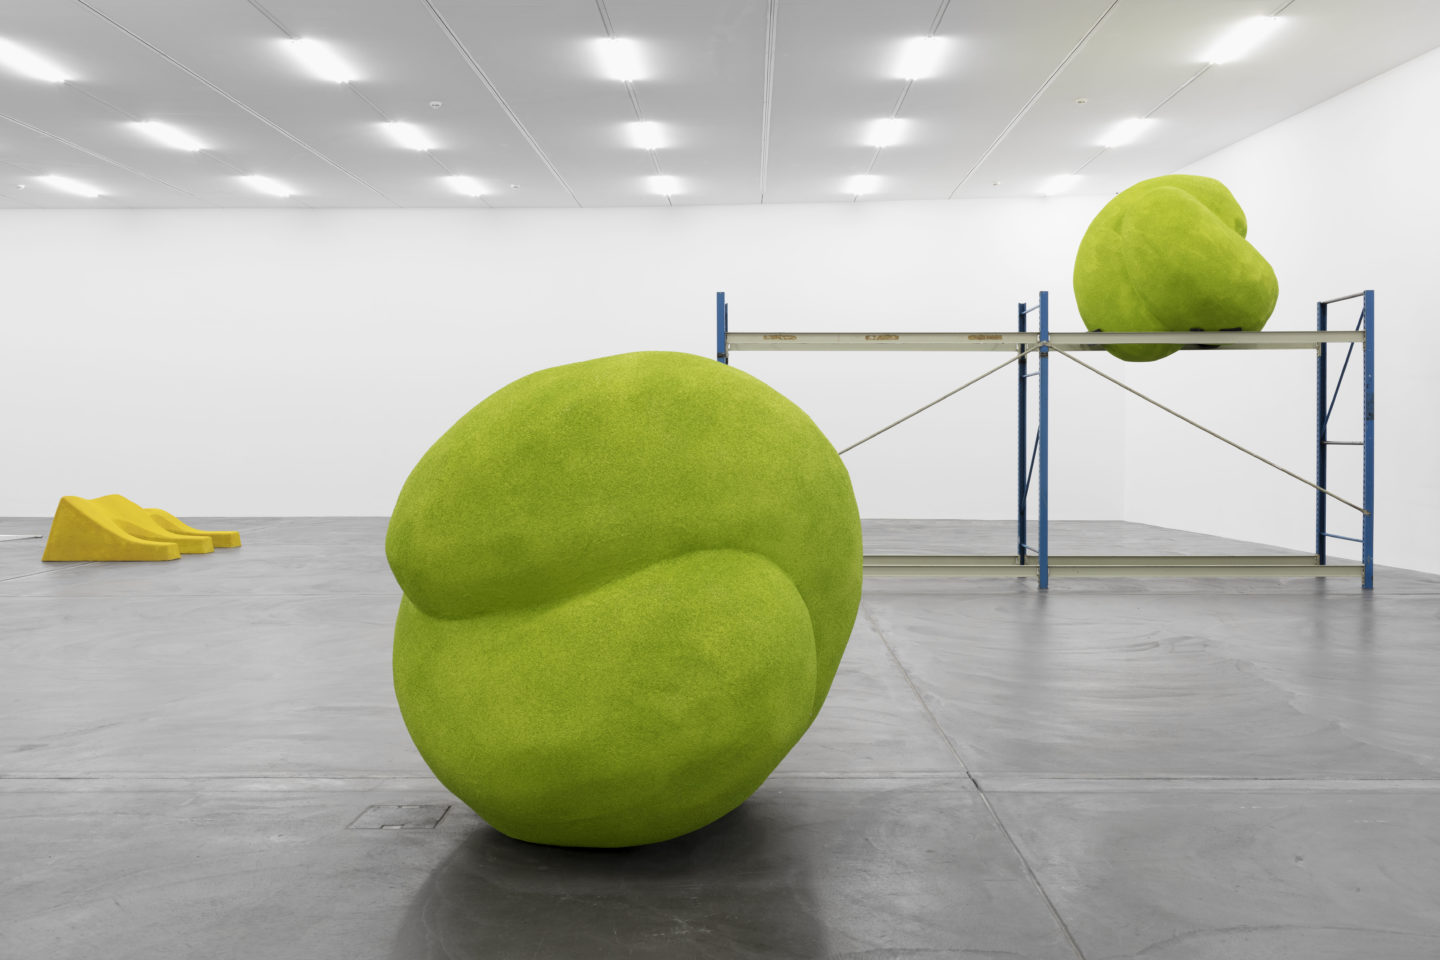 """Exhibition view, Lena Henke """"An Idea of Late German Sculpture; To the People of New York, 2018"""", Kunsthalle Zürich, 2018 / Photo: Gunnar Meier Photography"""